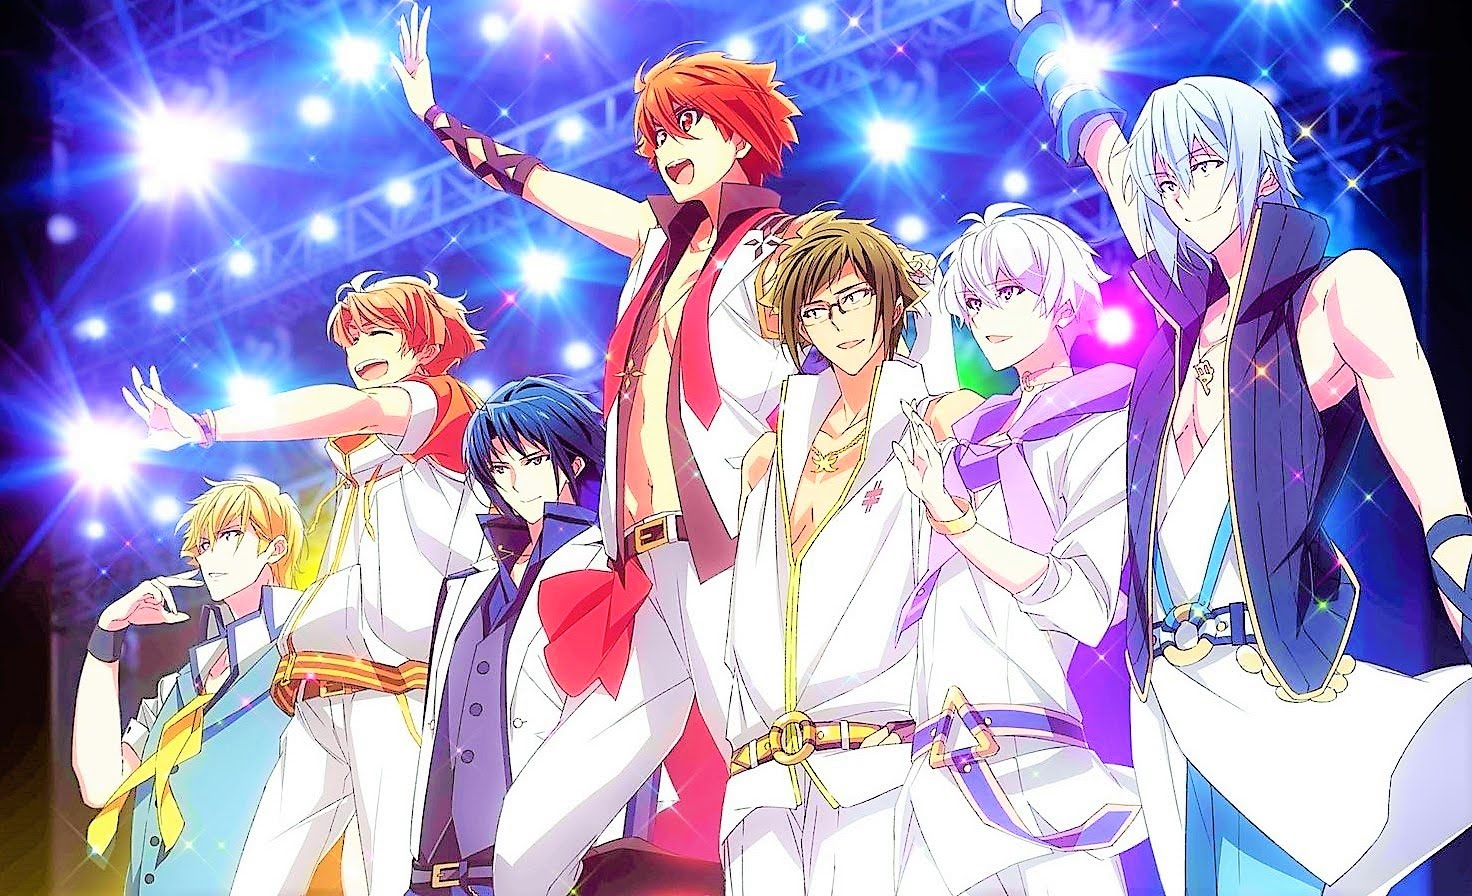 The boys of IDOLiSH7 walking out on stage